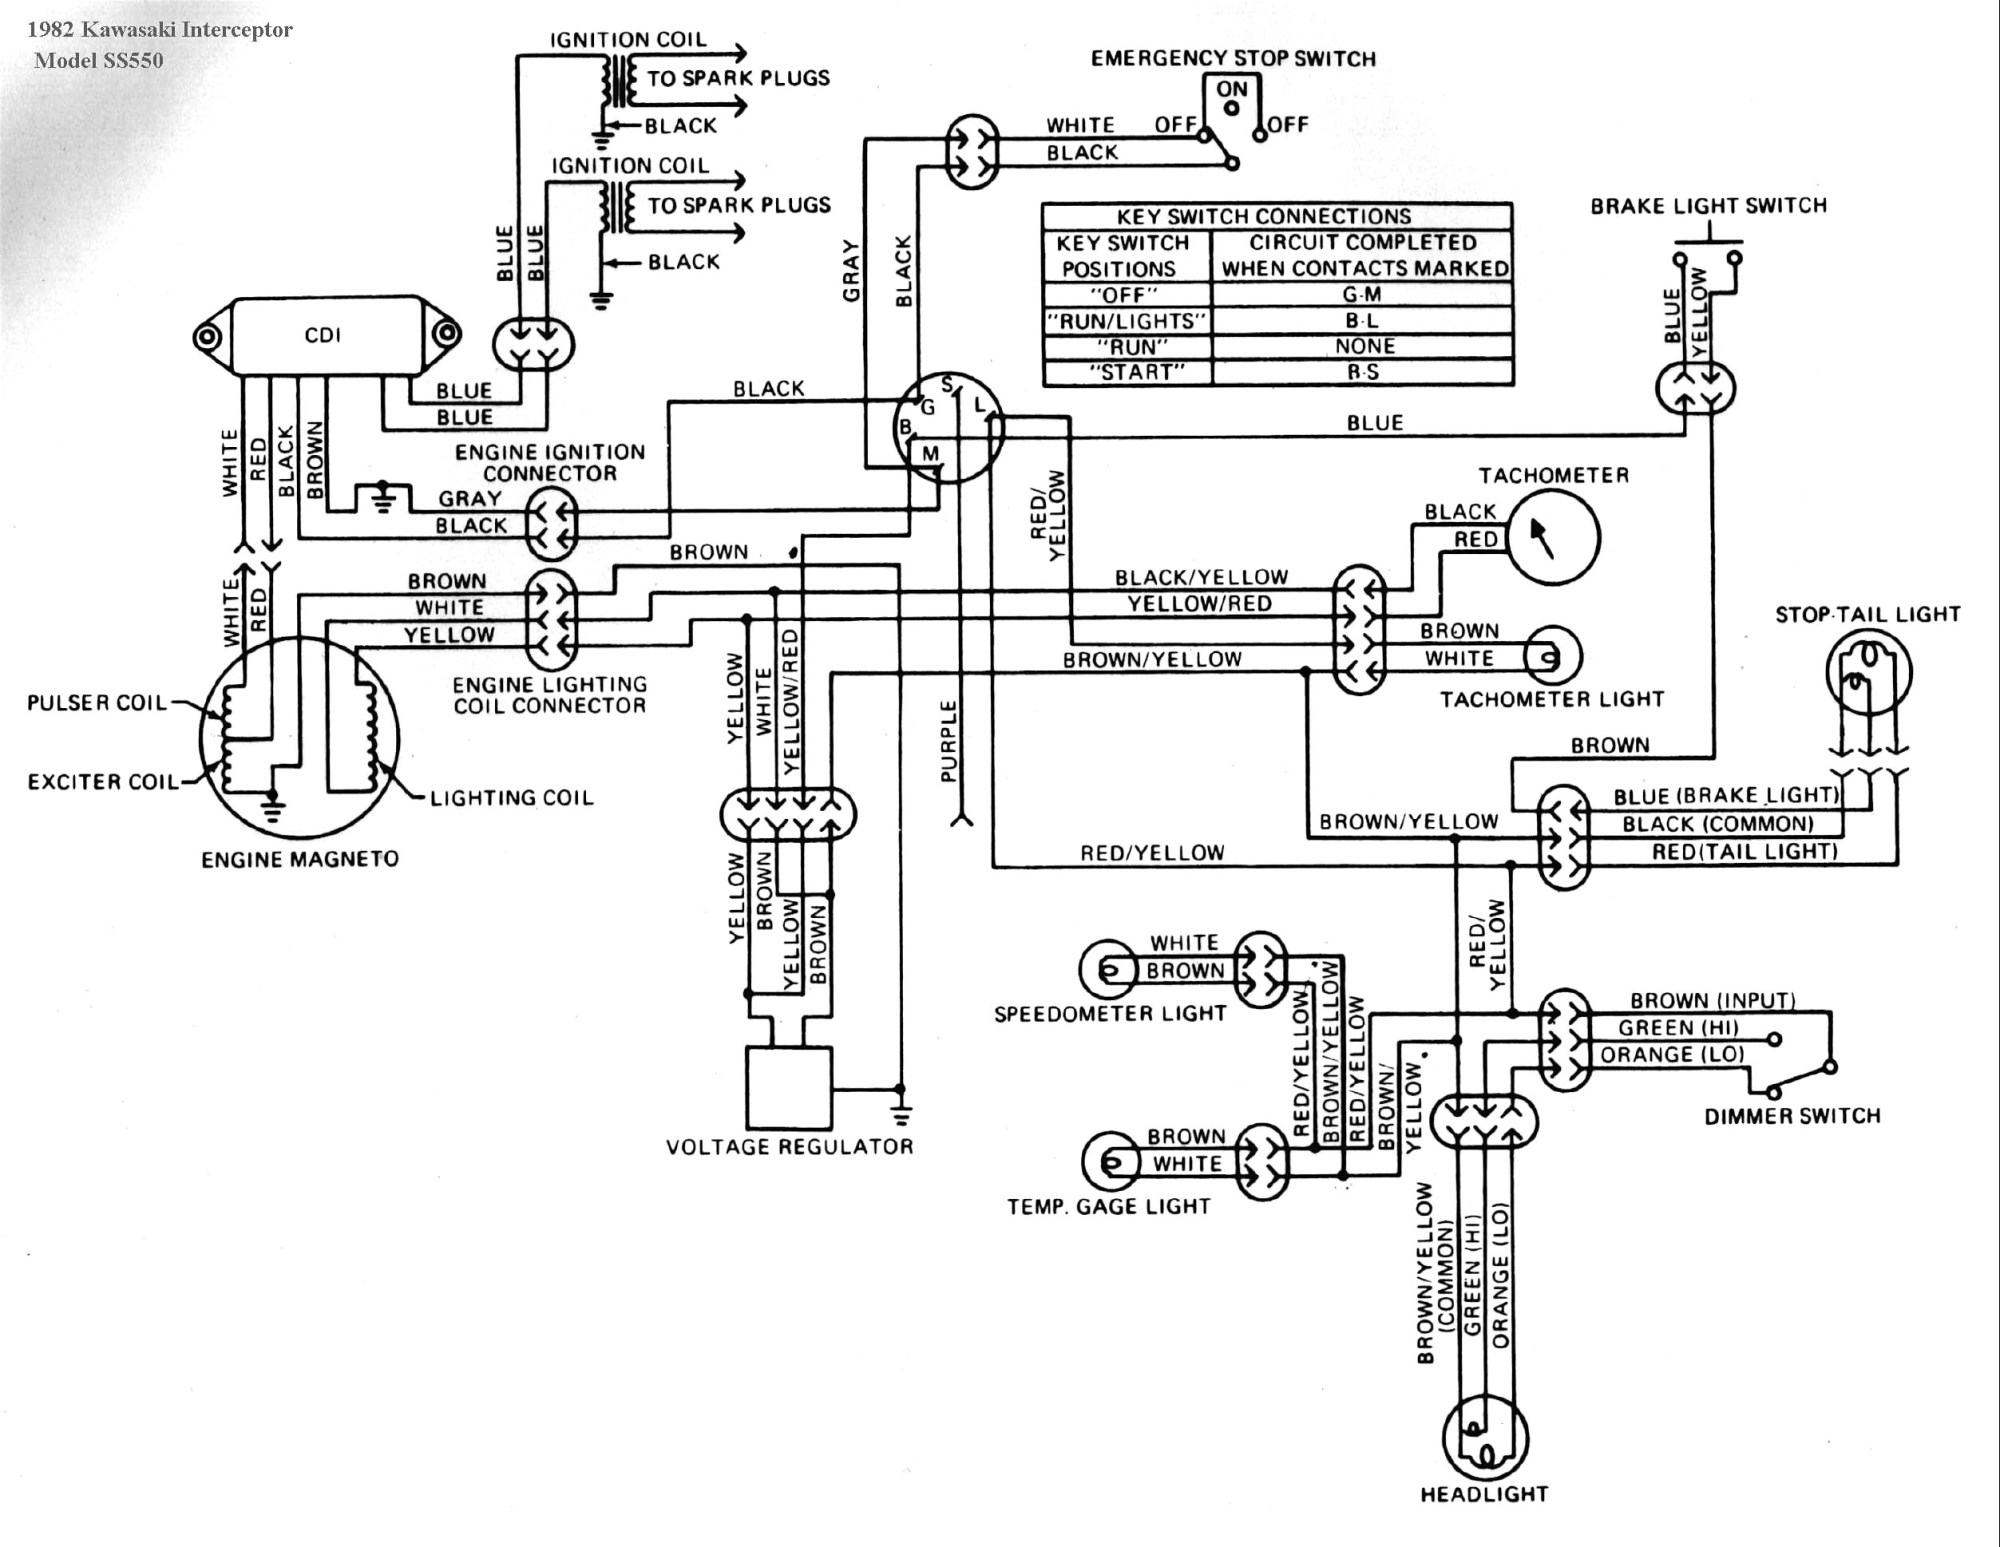 hight resolution of kawasaki klf220 wiring diagram wiring diagramkawasaki bayou 220 wiring manual wiring diagram mega